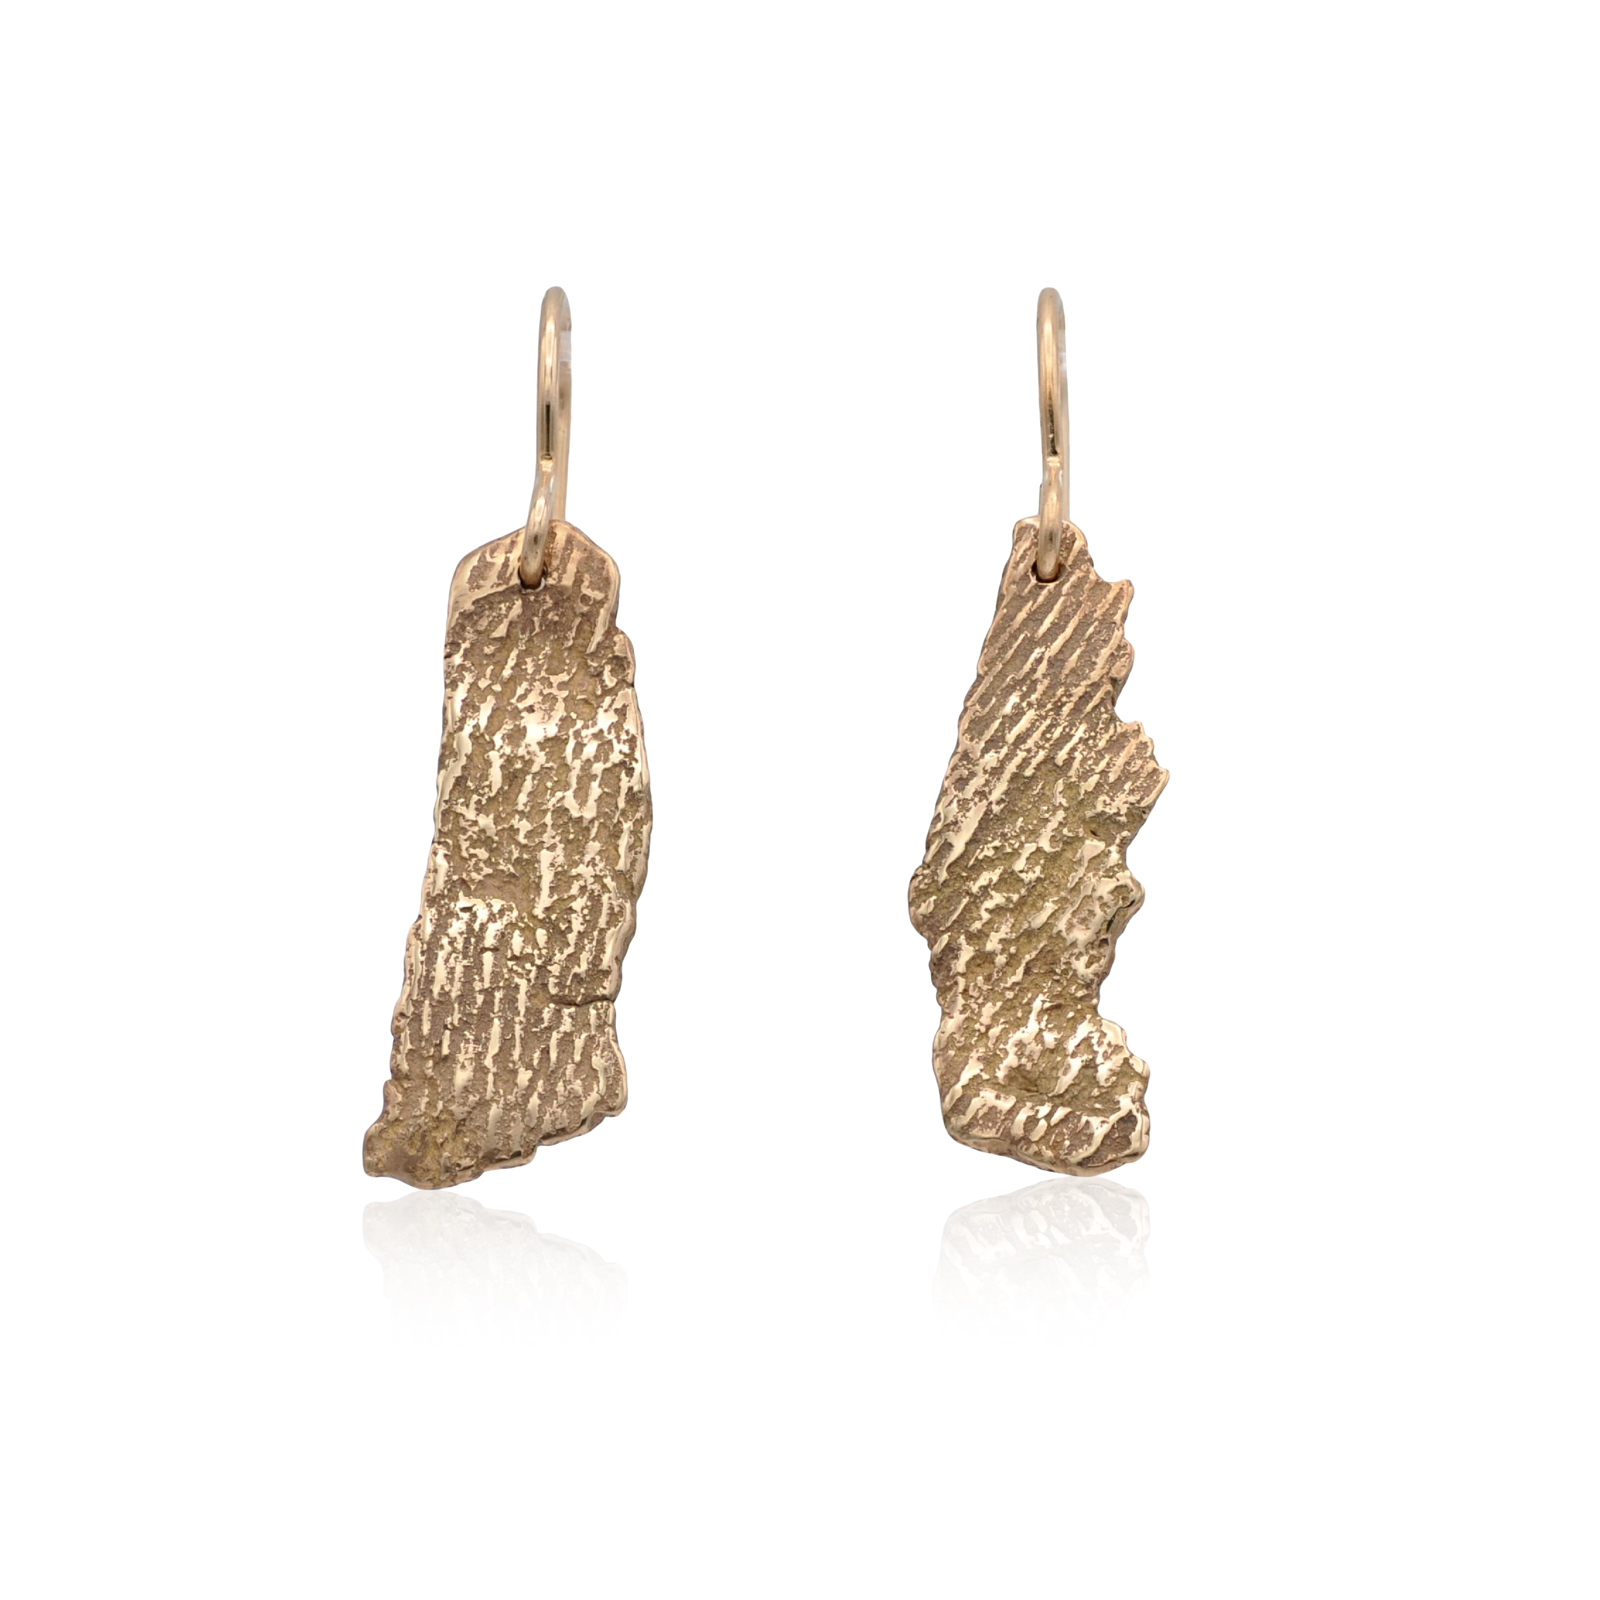 crepe-myrtle-bronze-earrings.jpg